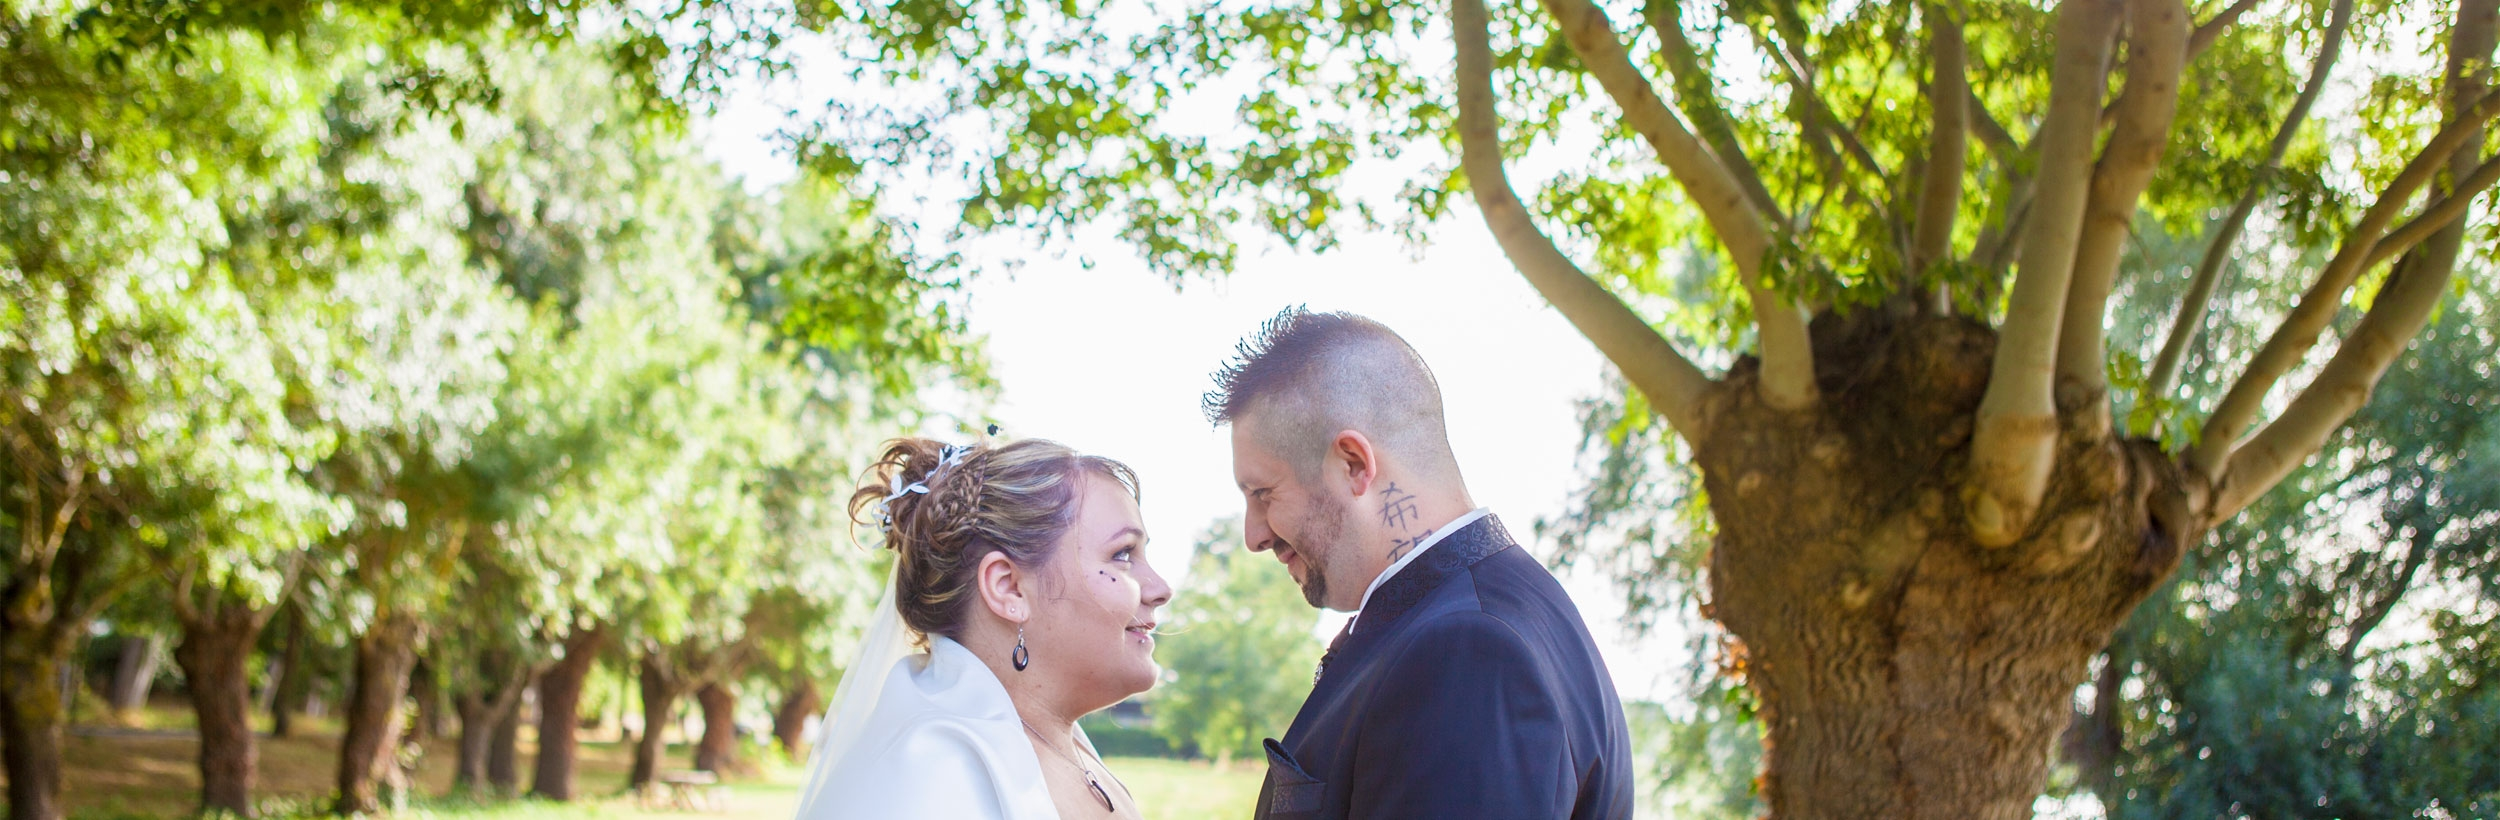 particuliers-evenements-mariage-oui-elodie&wilson-pagetop